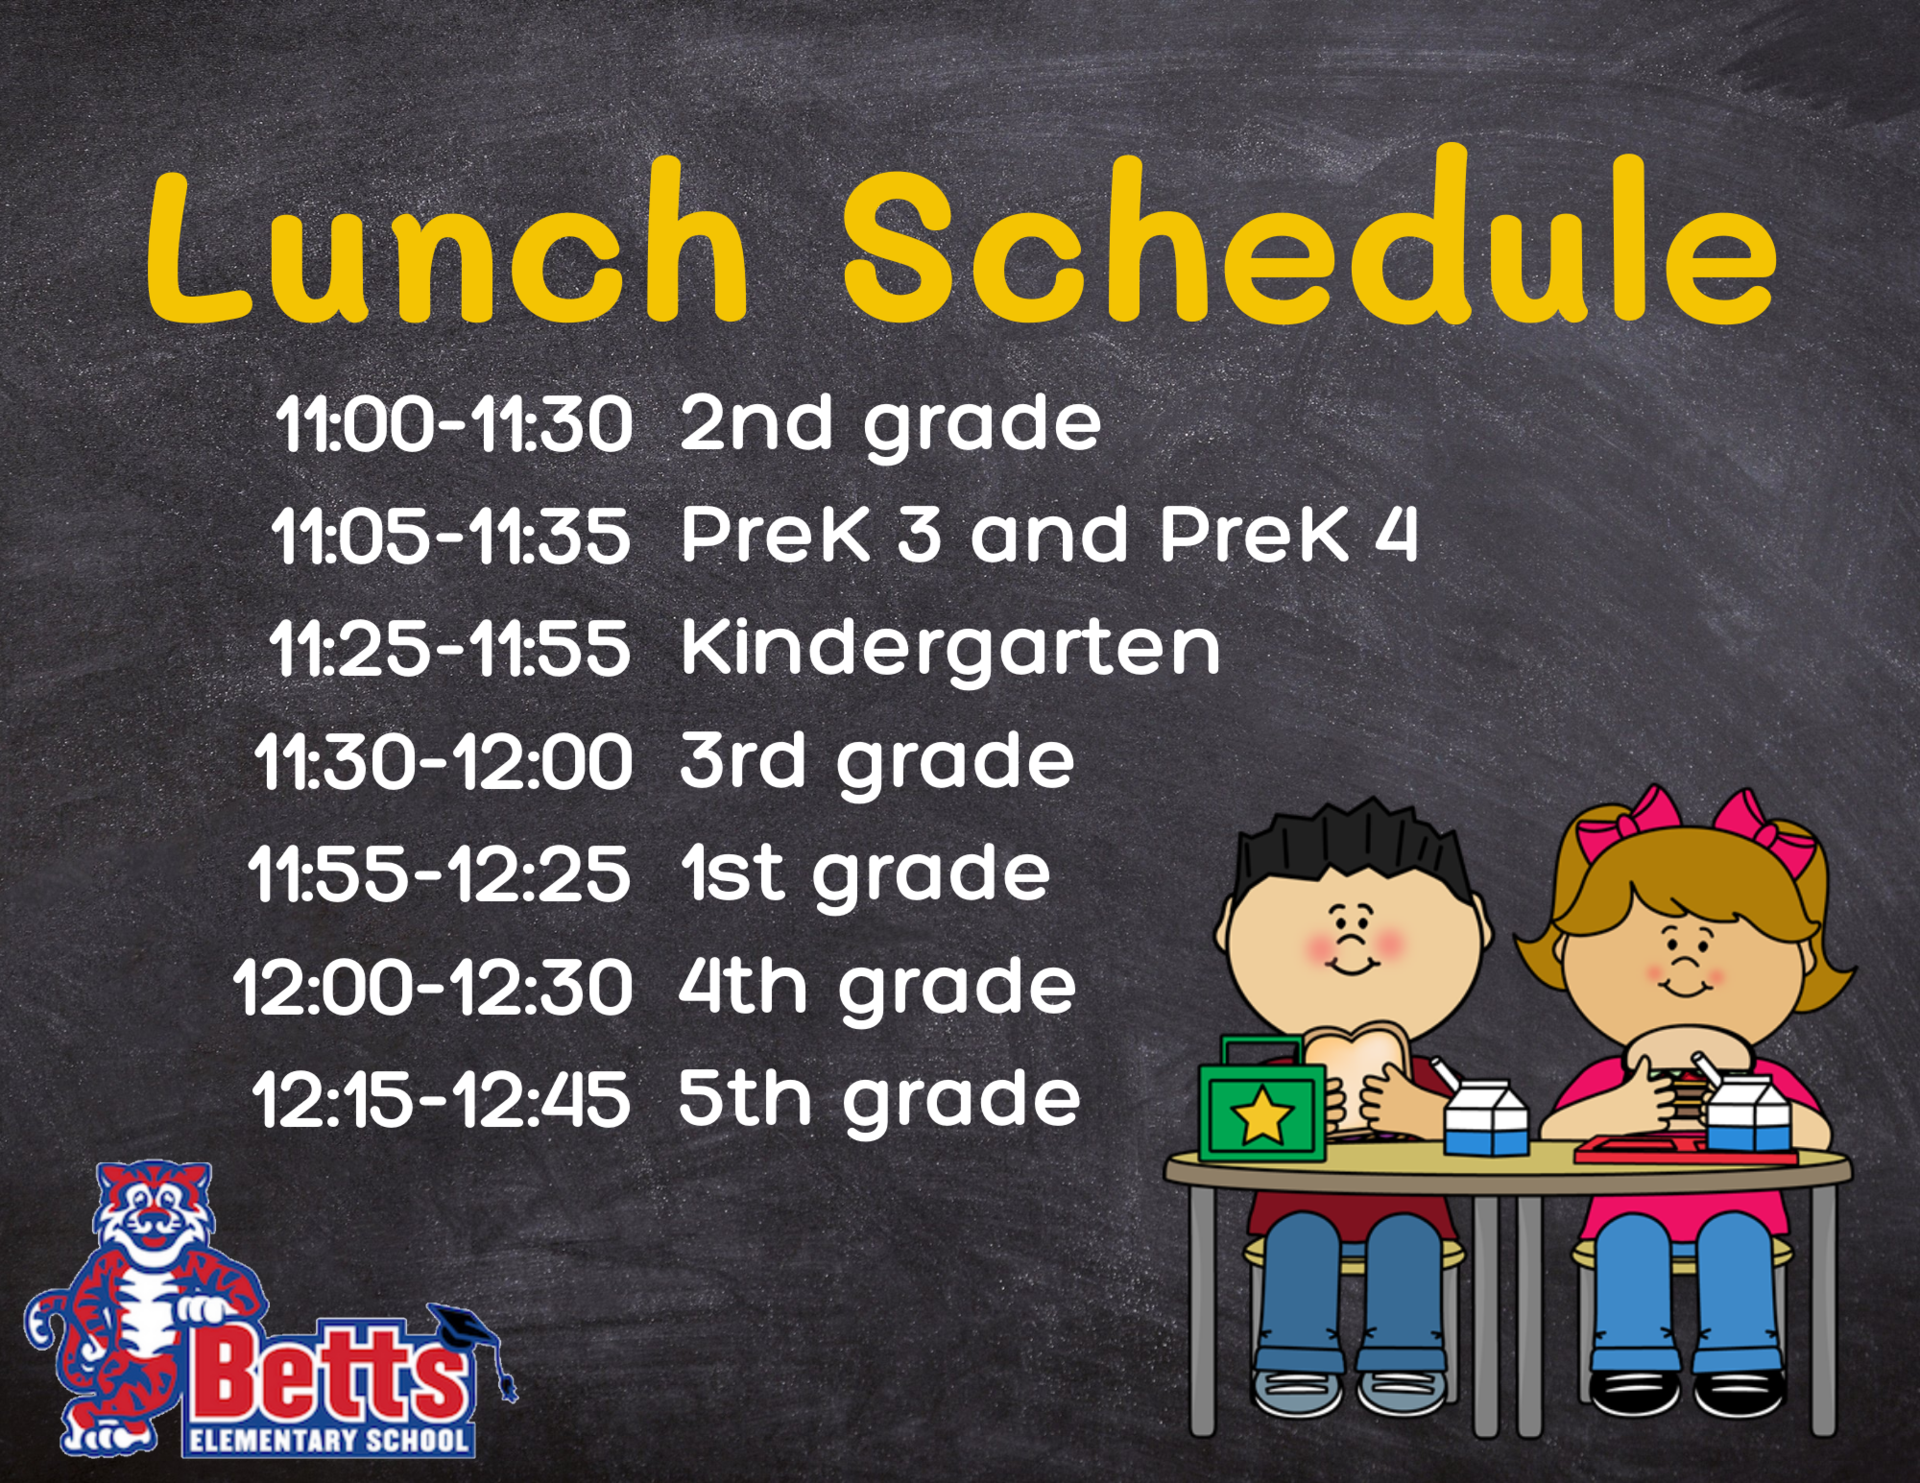 Image of Lunch schedule